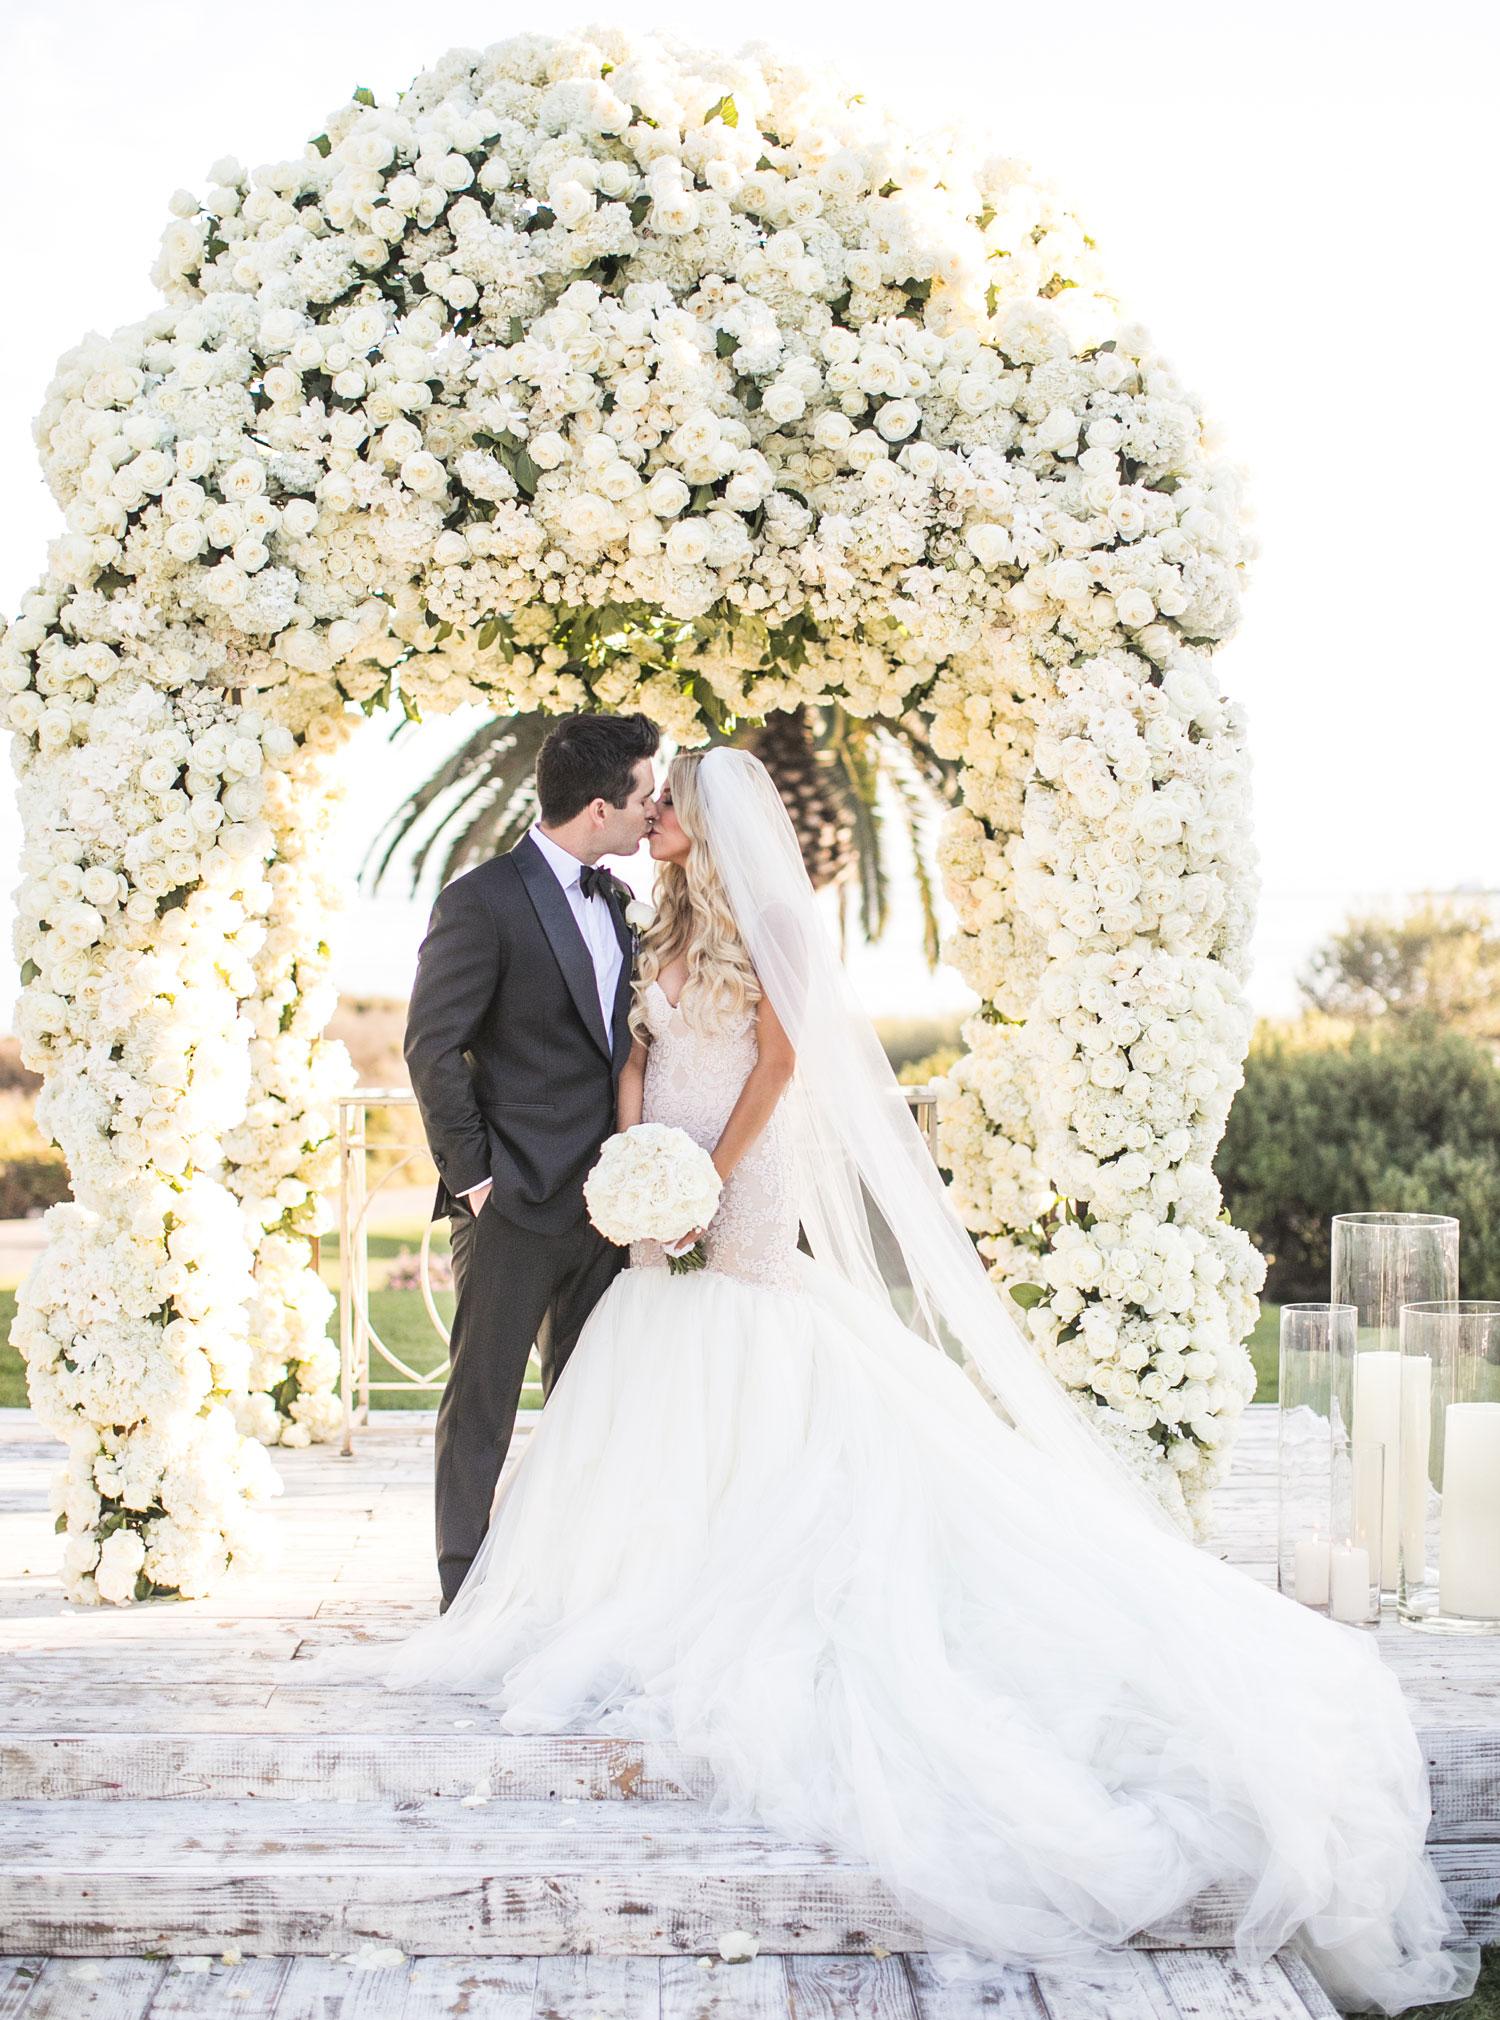 Real bride in Galia Lahav wedding dress sweetheart neckline mermaid gown lush flower ceremony chuppah